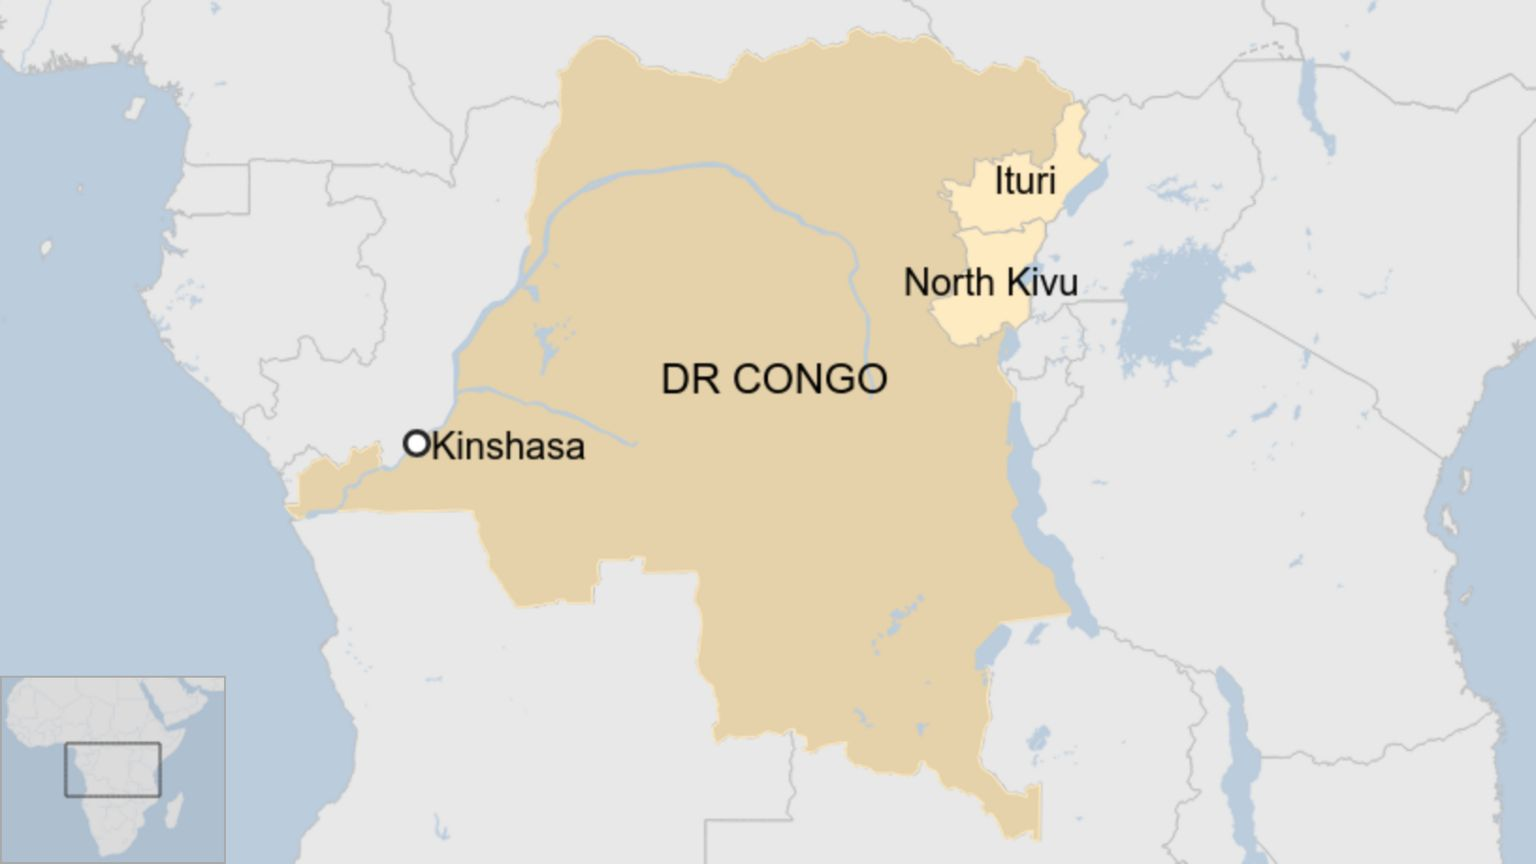 Map showing DR Congo